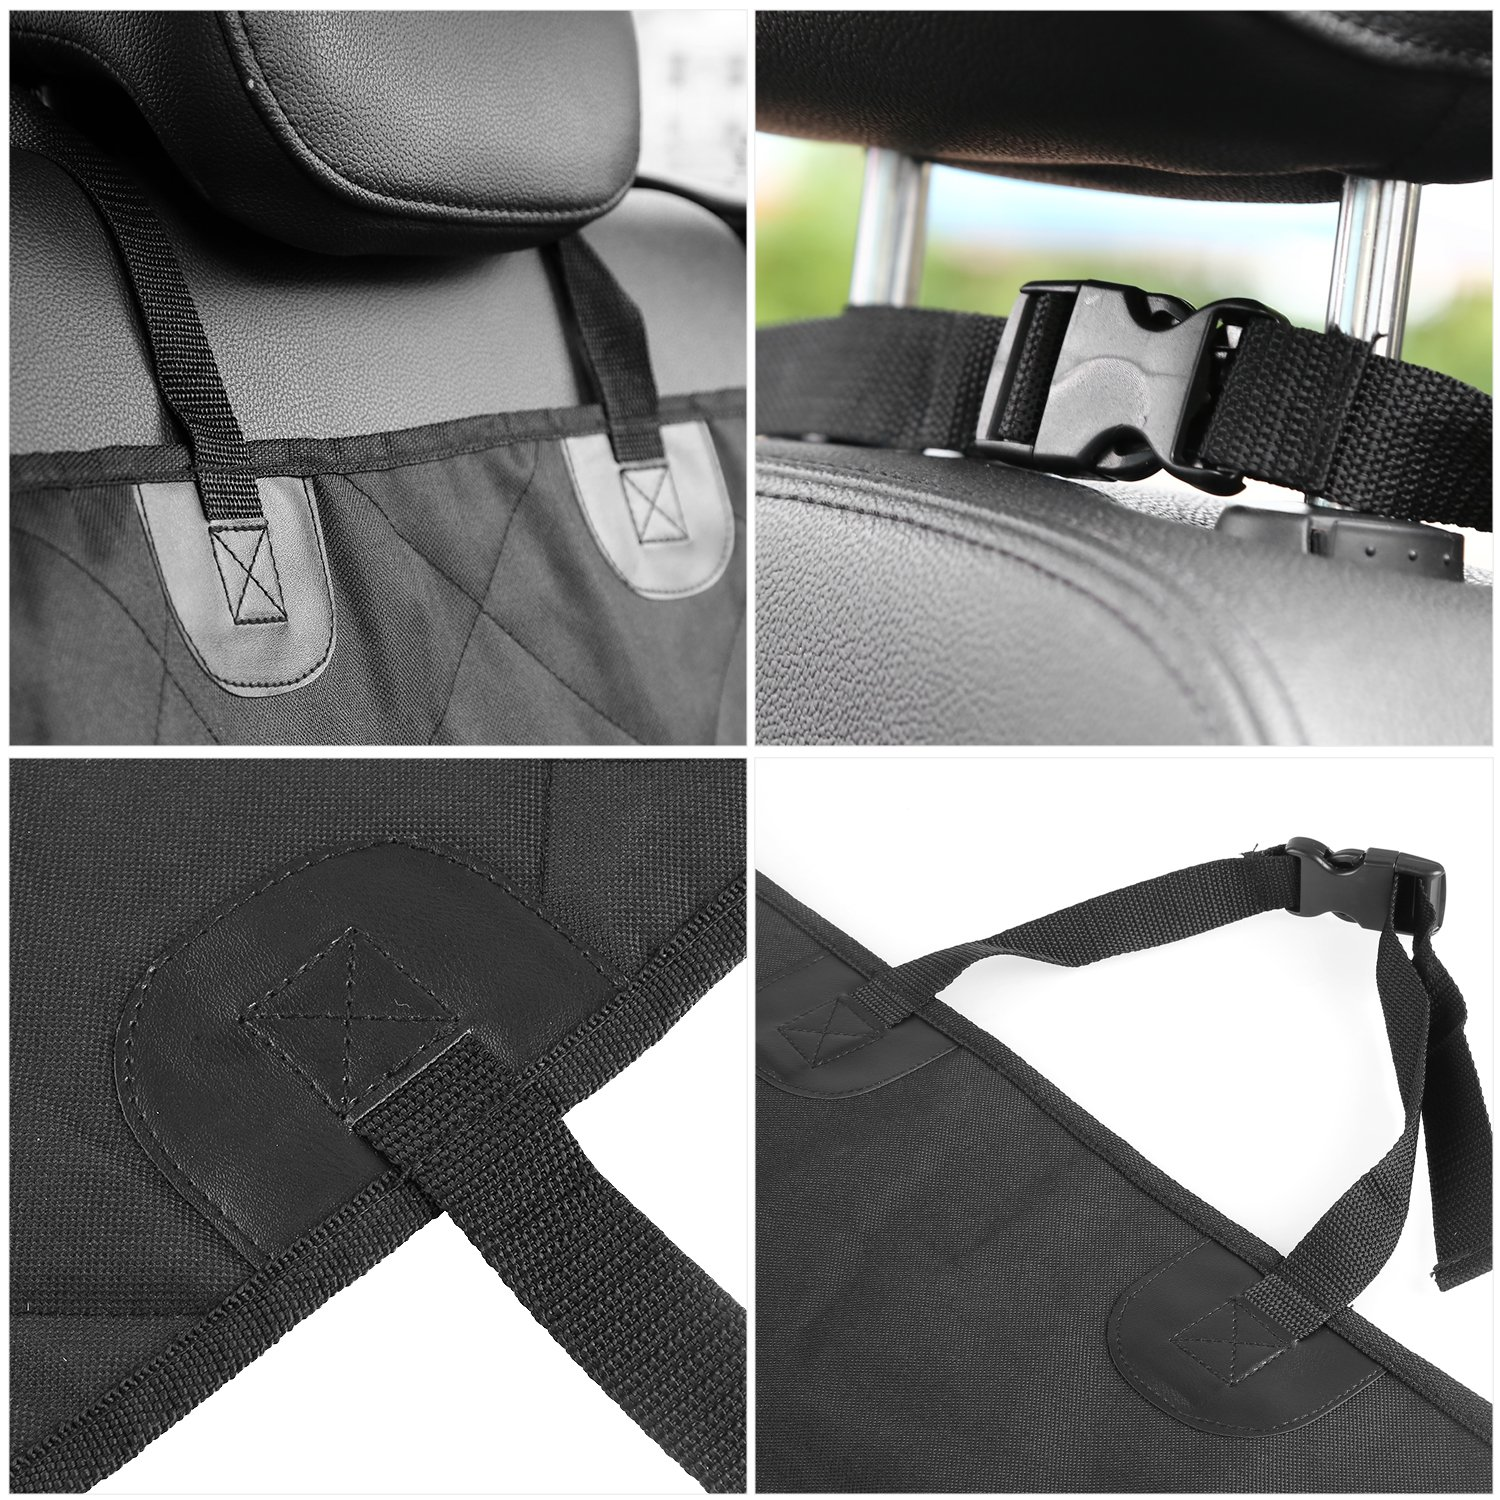 MVPOWER Pet Car Seat Cover Waterproof Travel Accessories Front Seat Cover Protector for Dog